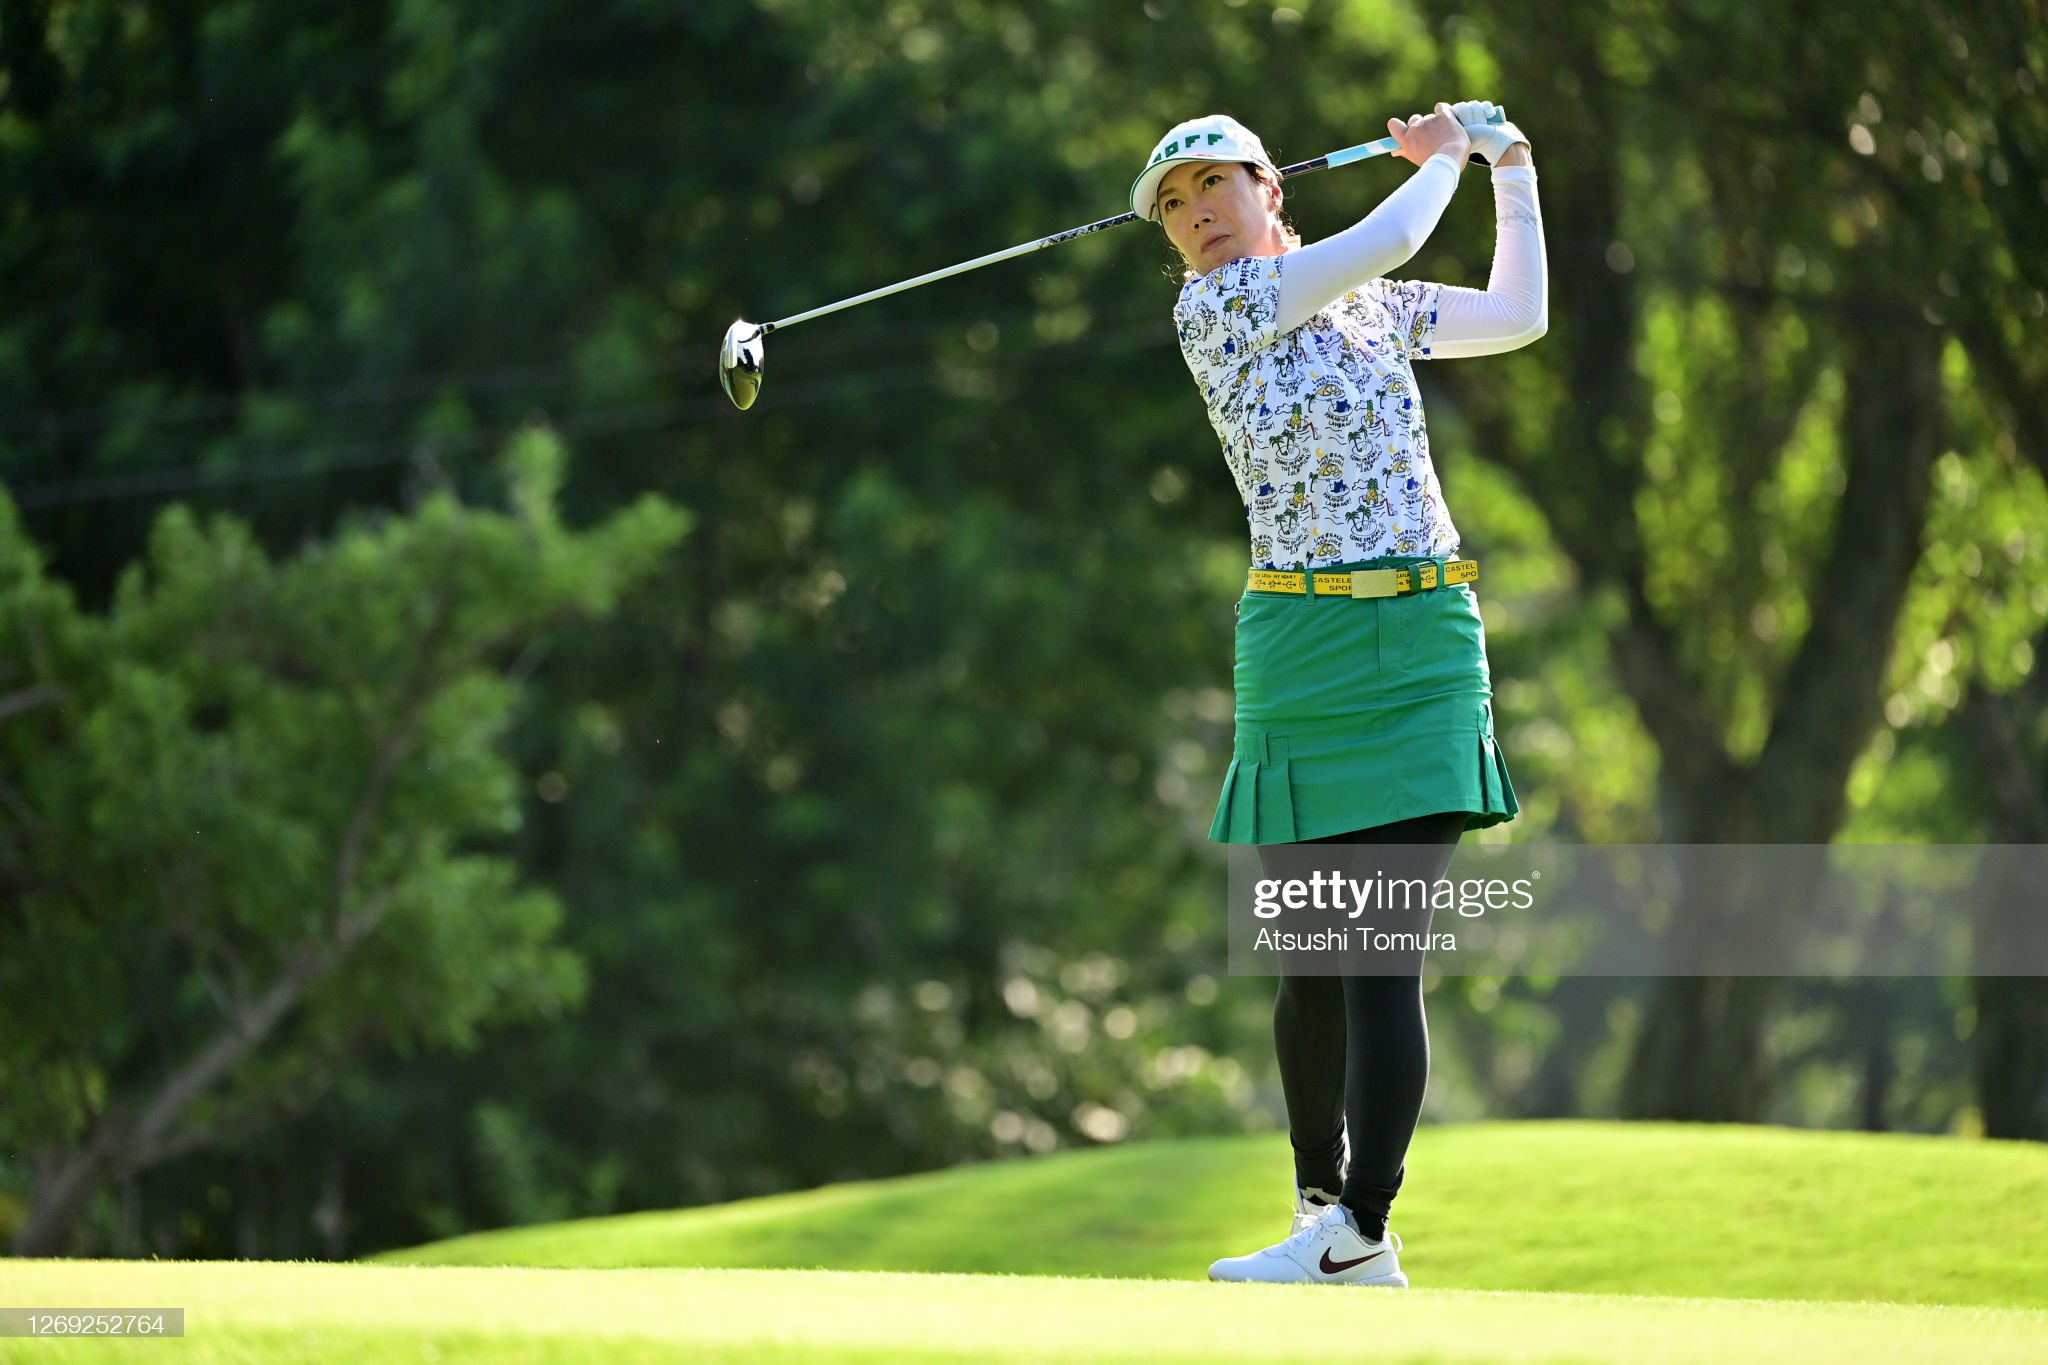 https://media.gettyimages.com/photos/jihee-lee-of-south-korea-hits-her-tee-shot-on-the-18th-hole-during-picture-id1269252764?s=2048x2048